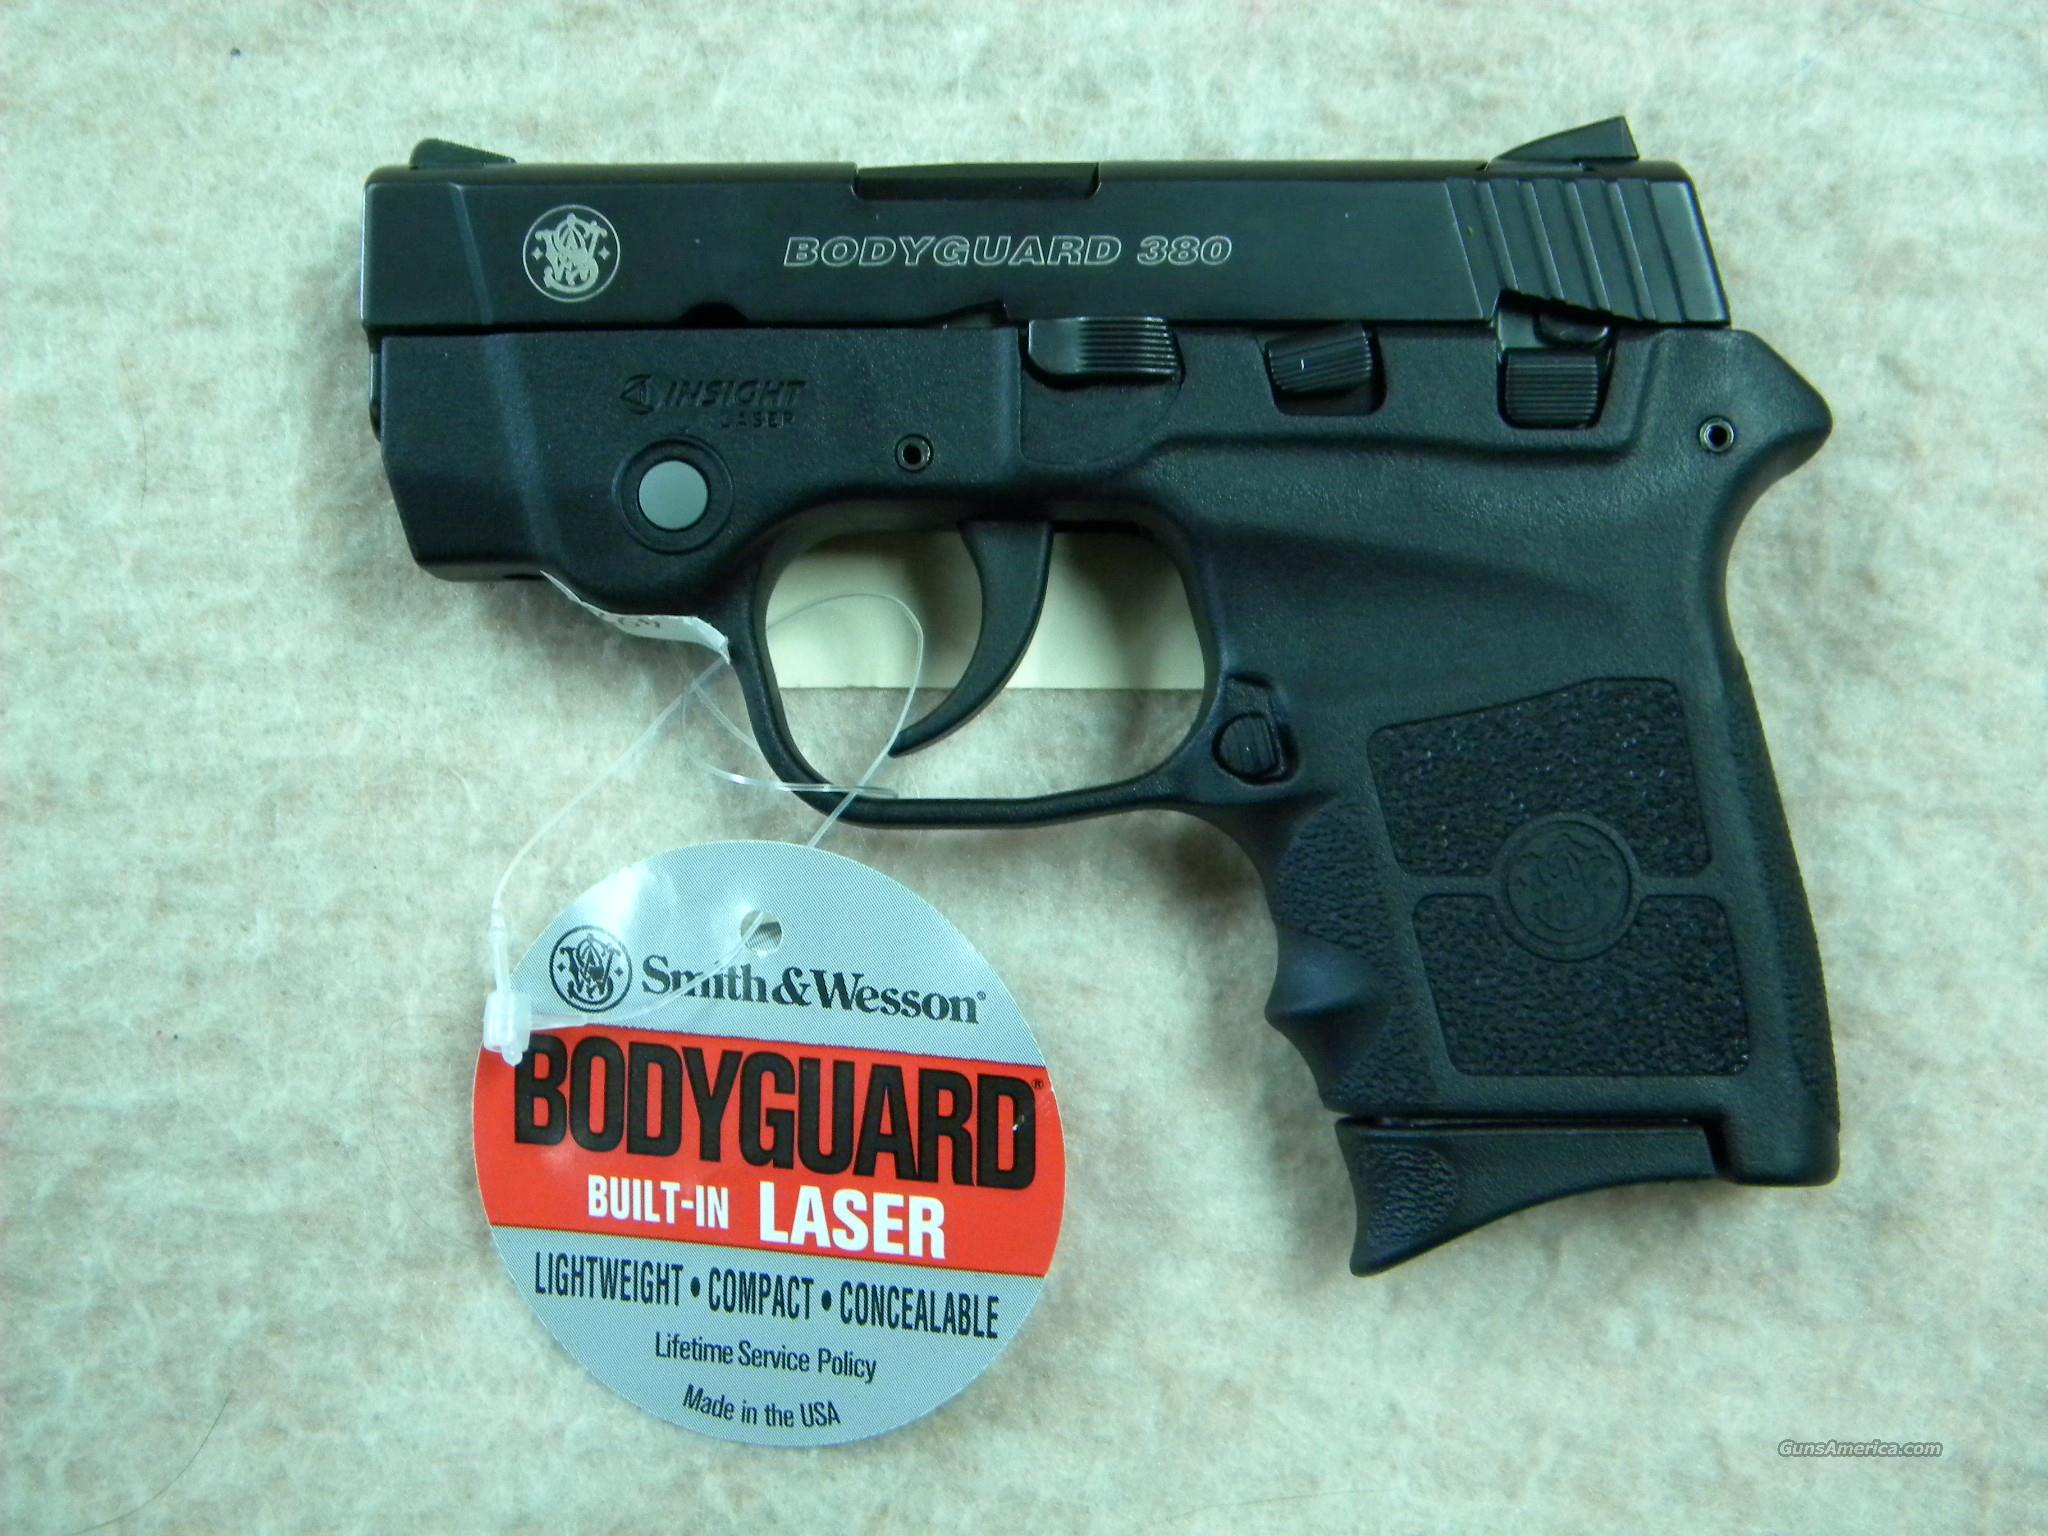 Smith and Wesson Bodyguard 380 with Laser  Guns > Pistols > Smith & Wesson Pistols - Autos > Polymer Frame